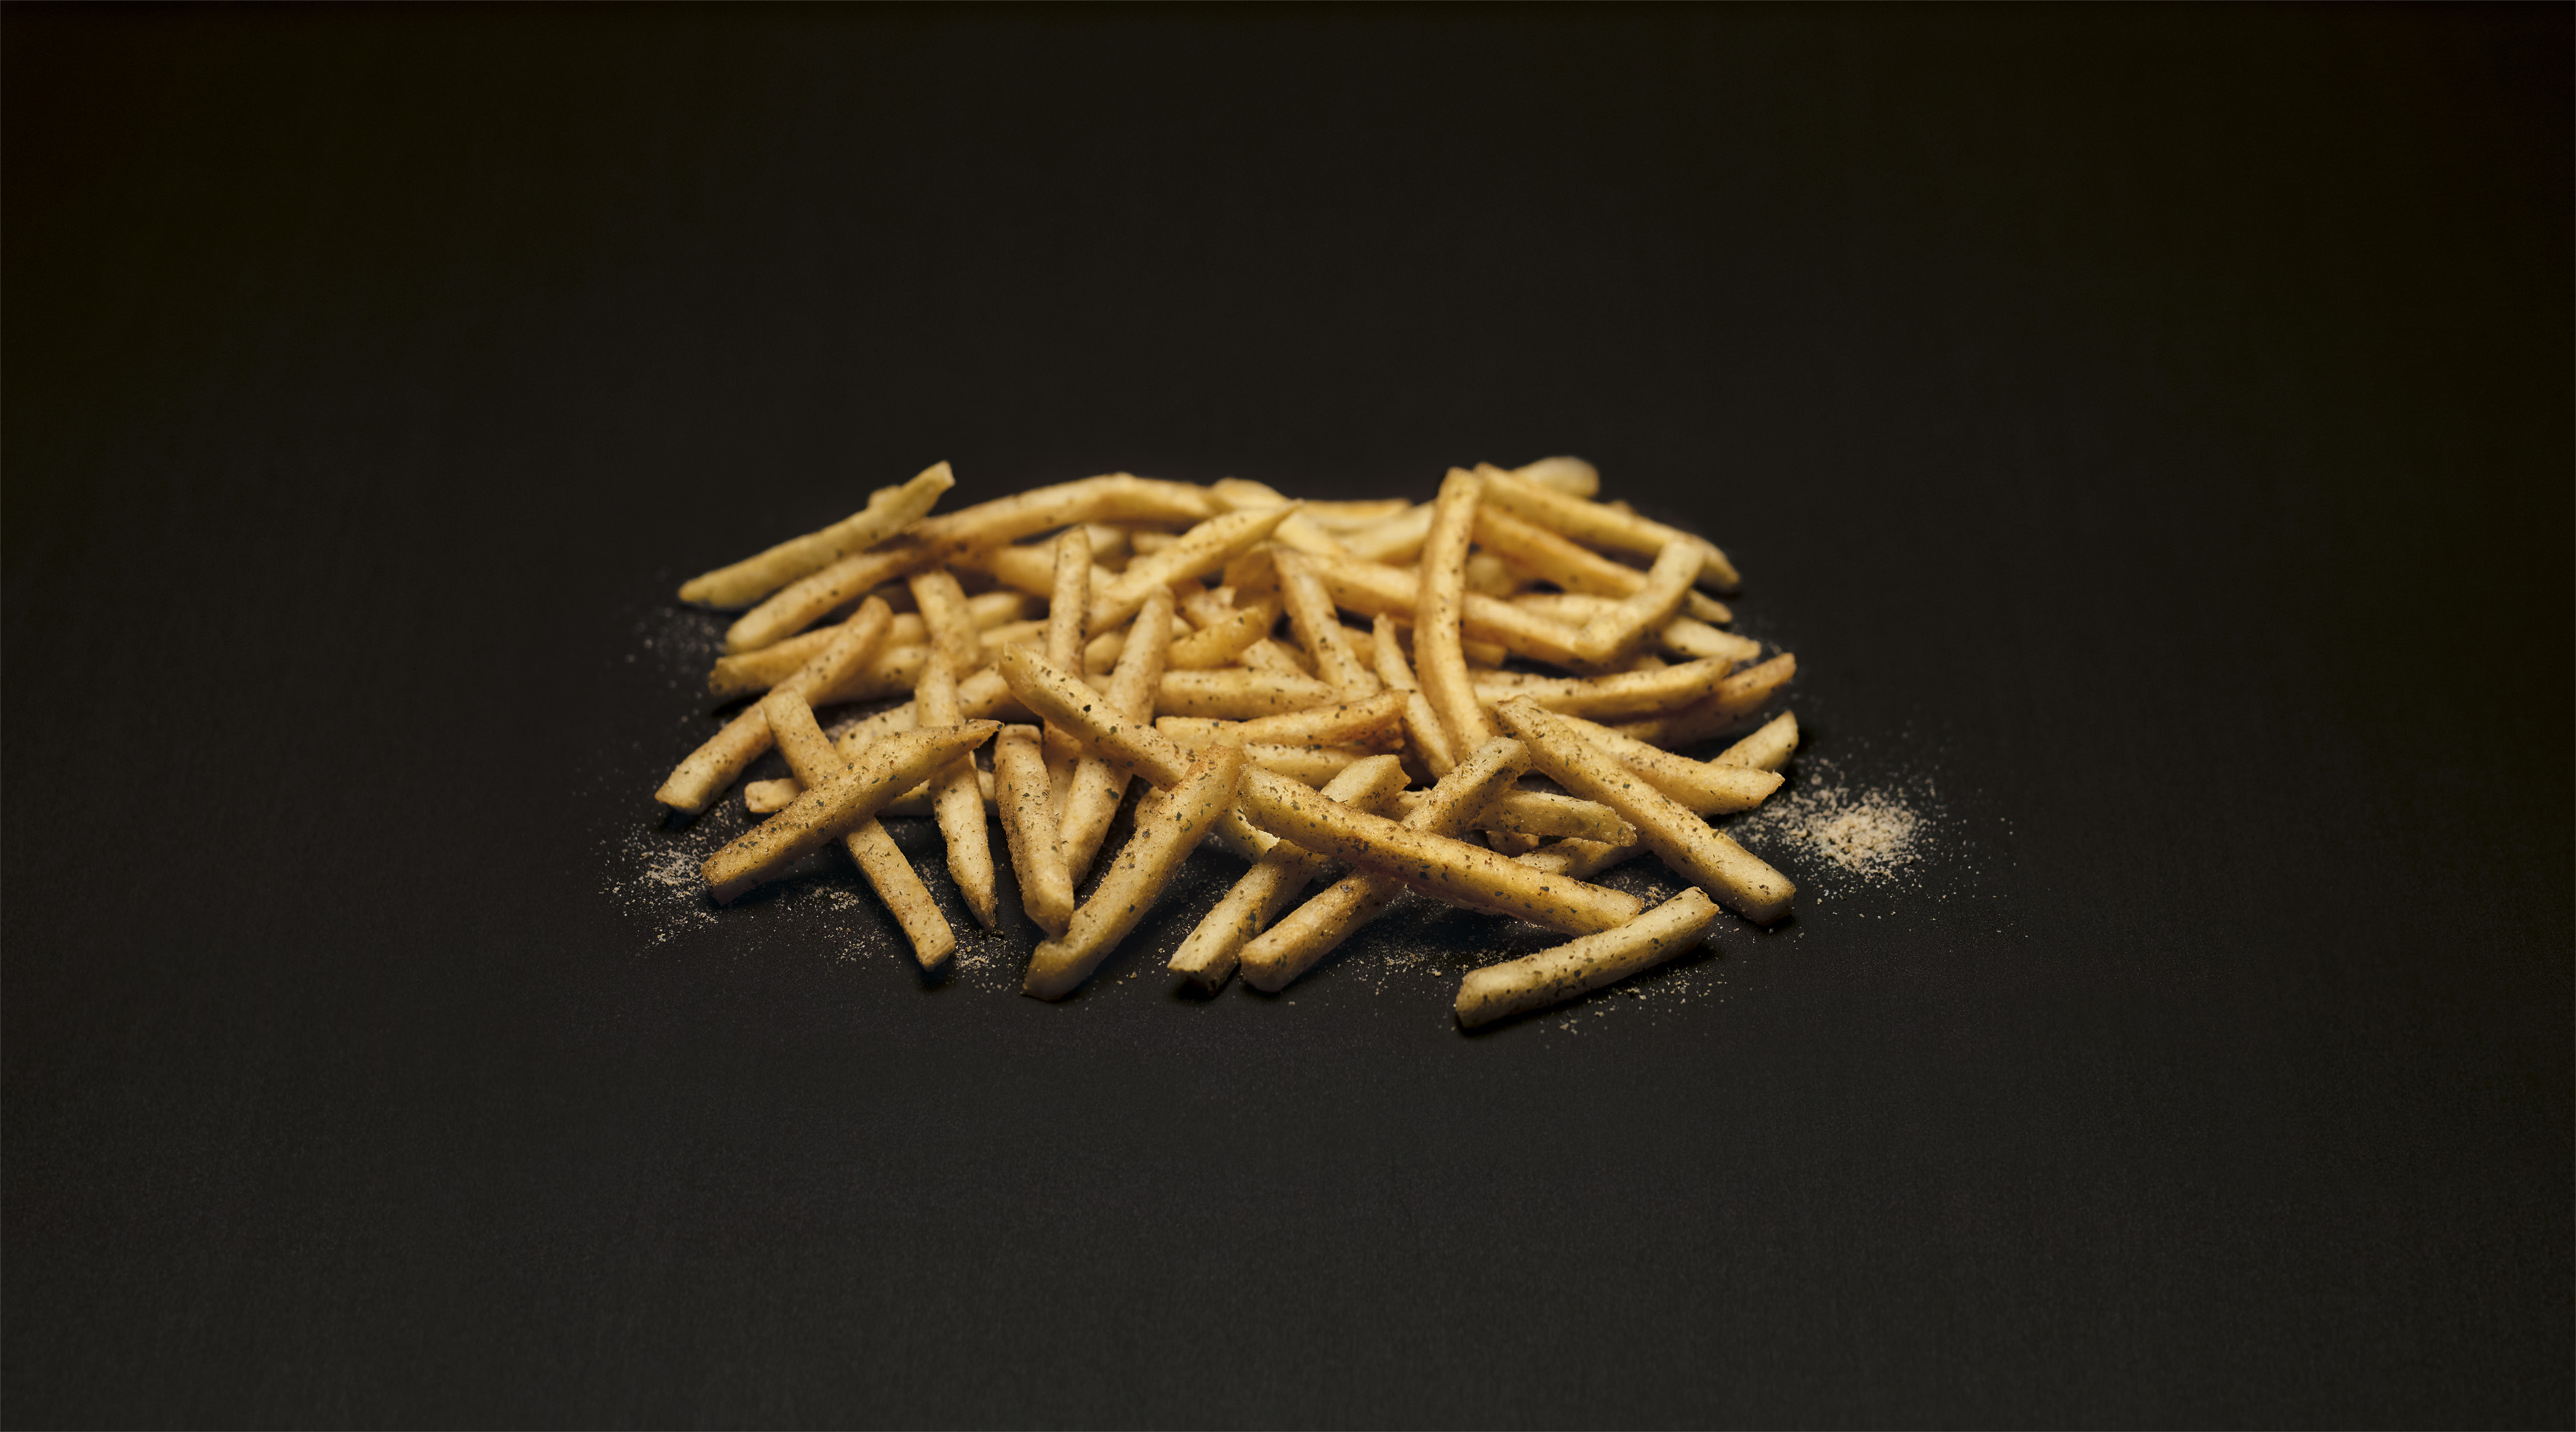 McDonald's Roasted Sesame and Seaweed Shaker Fries